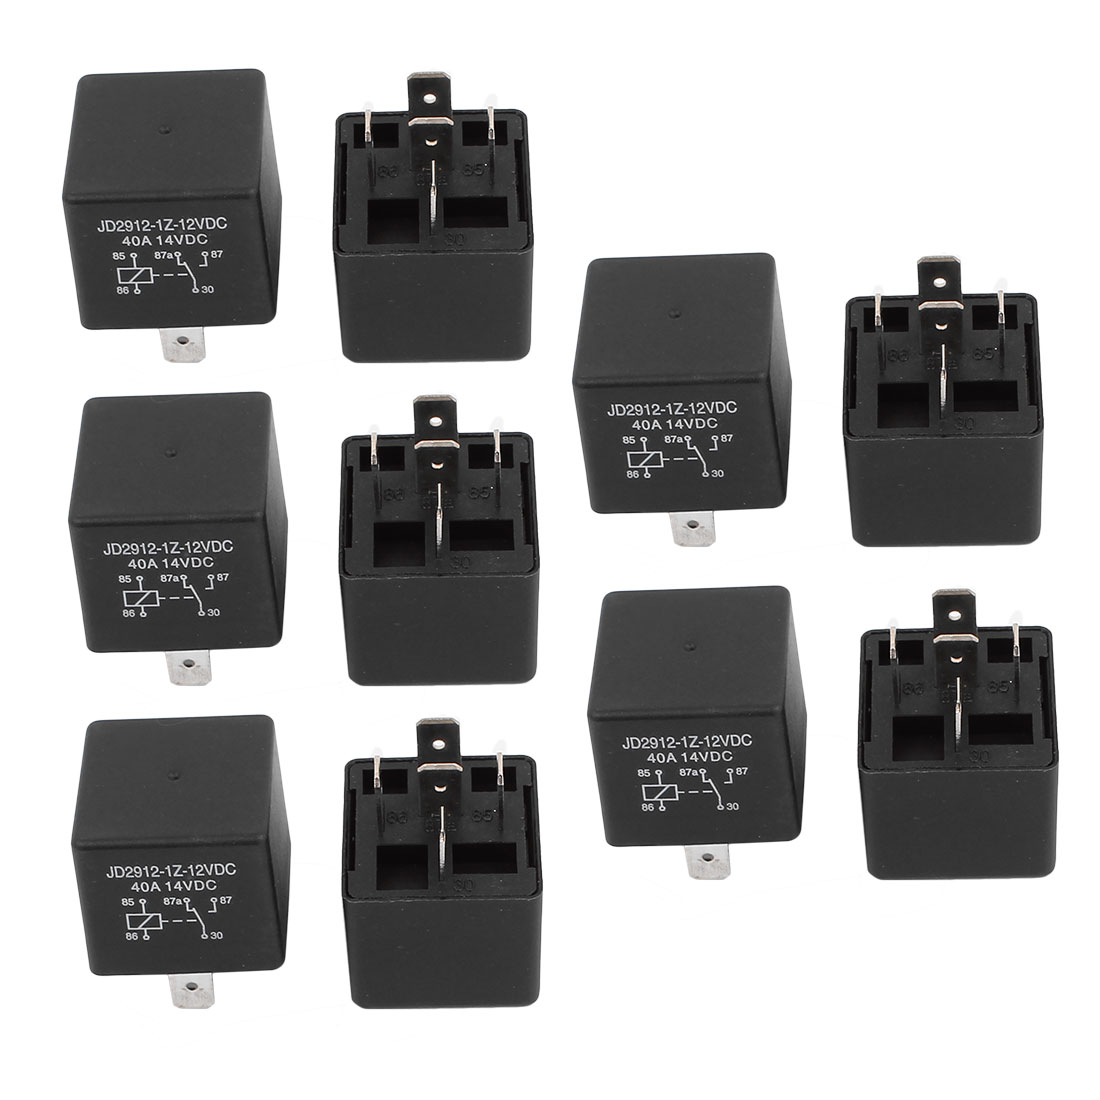 JD2912 DC 12V Coil 40A 5 Pins SPDT Vehicle Car Security Power Relay 10pcs